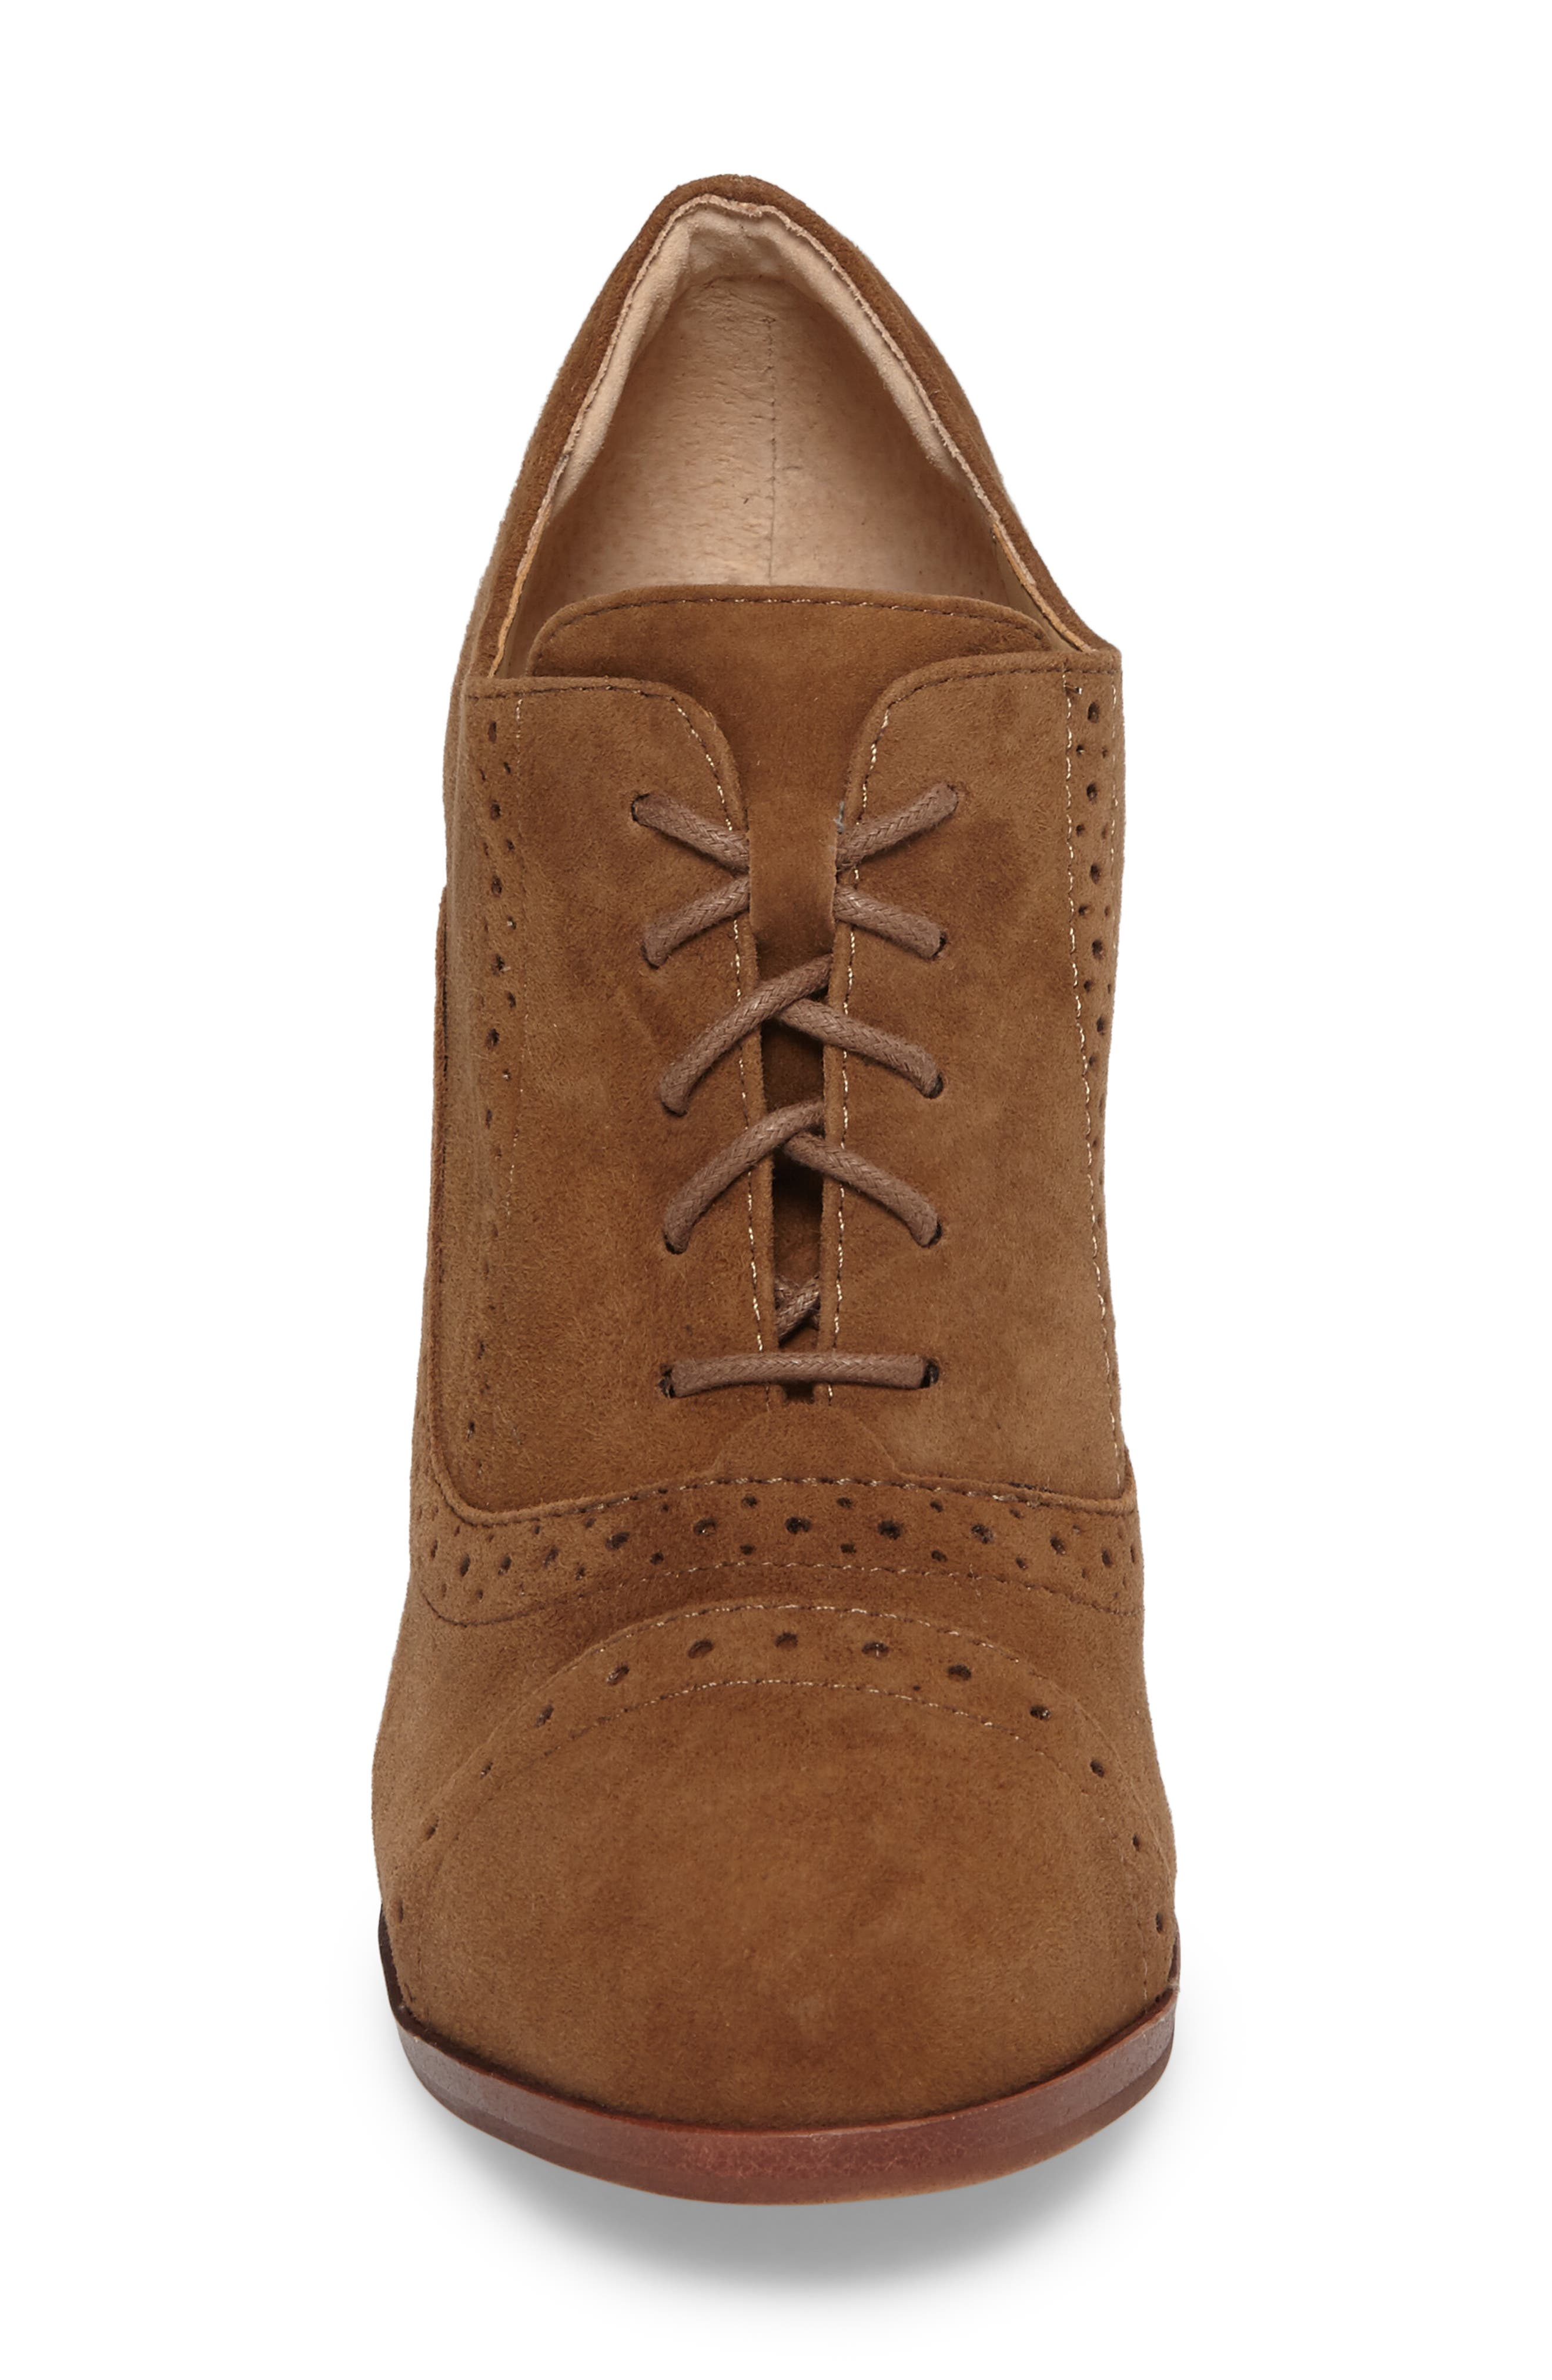 ISOLÁ, Holli Oxford Pump, Alternate thumbnail 4, color, LIGHT BROWN SUEDE